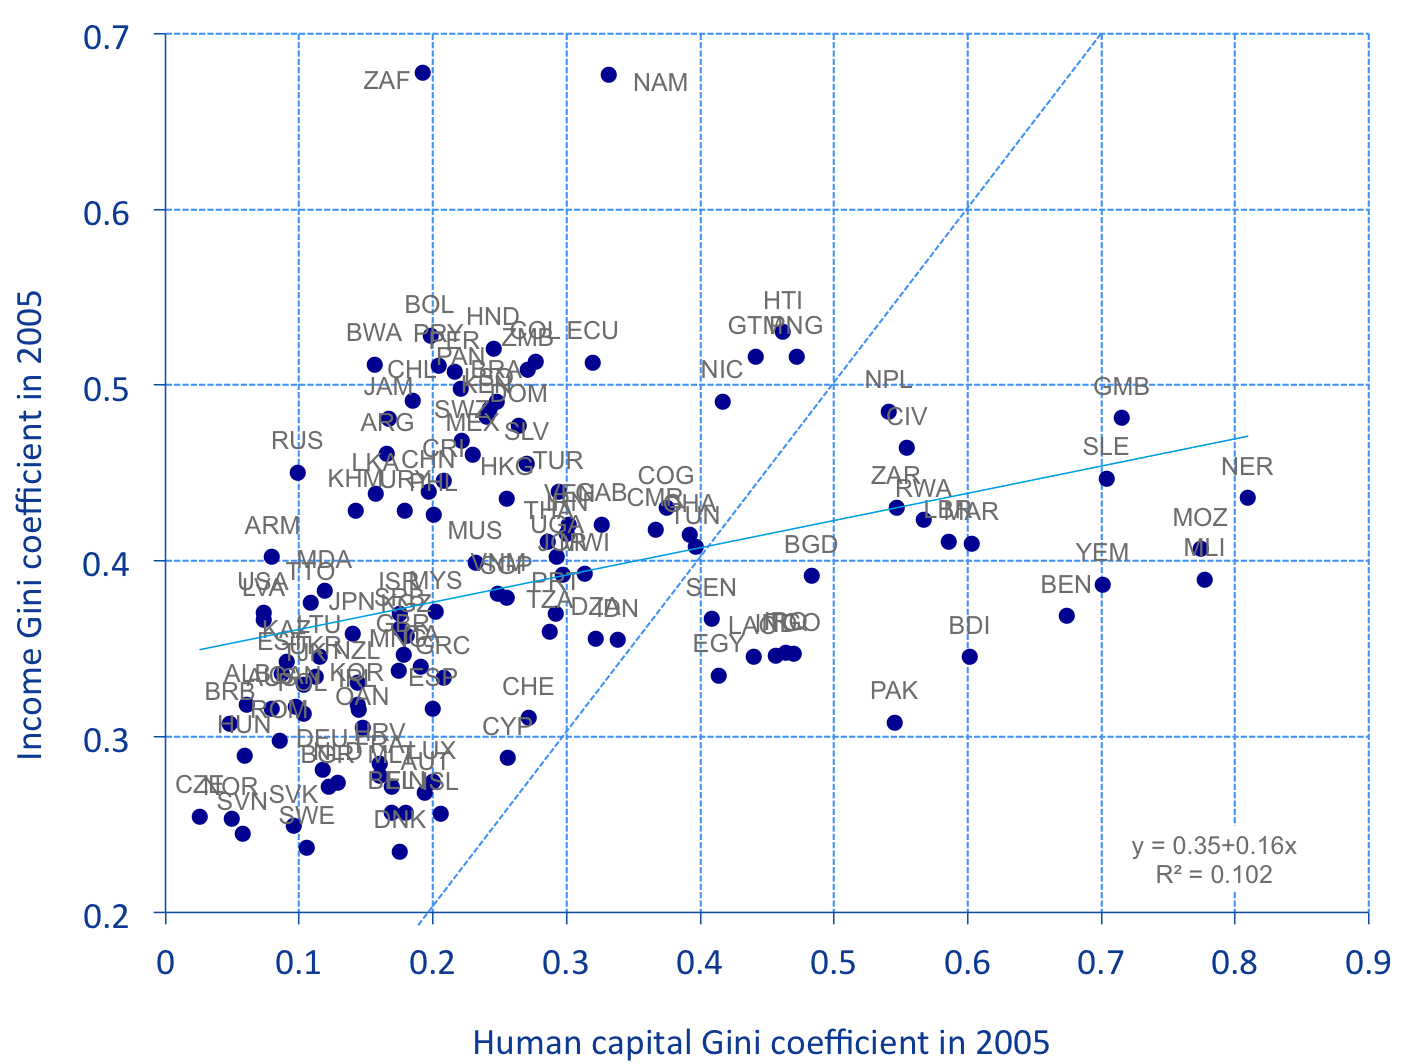 HUMAN CAPITAL AND INCOME INEQUALITY 13 Figure 5: Human capital and income Gini coefficients across countries in 2005. of education and a relative low inequality in the distribution of income.